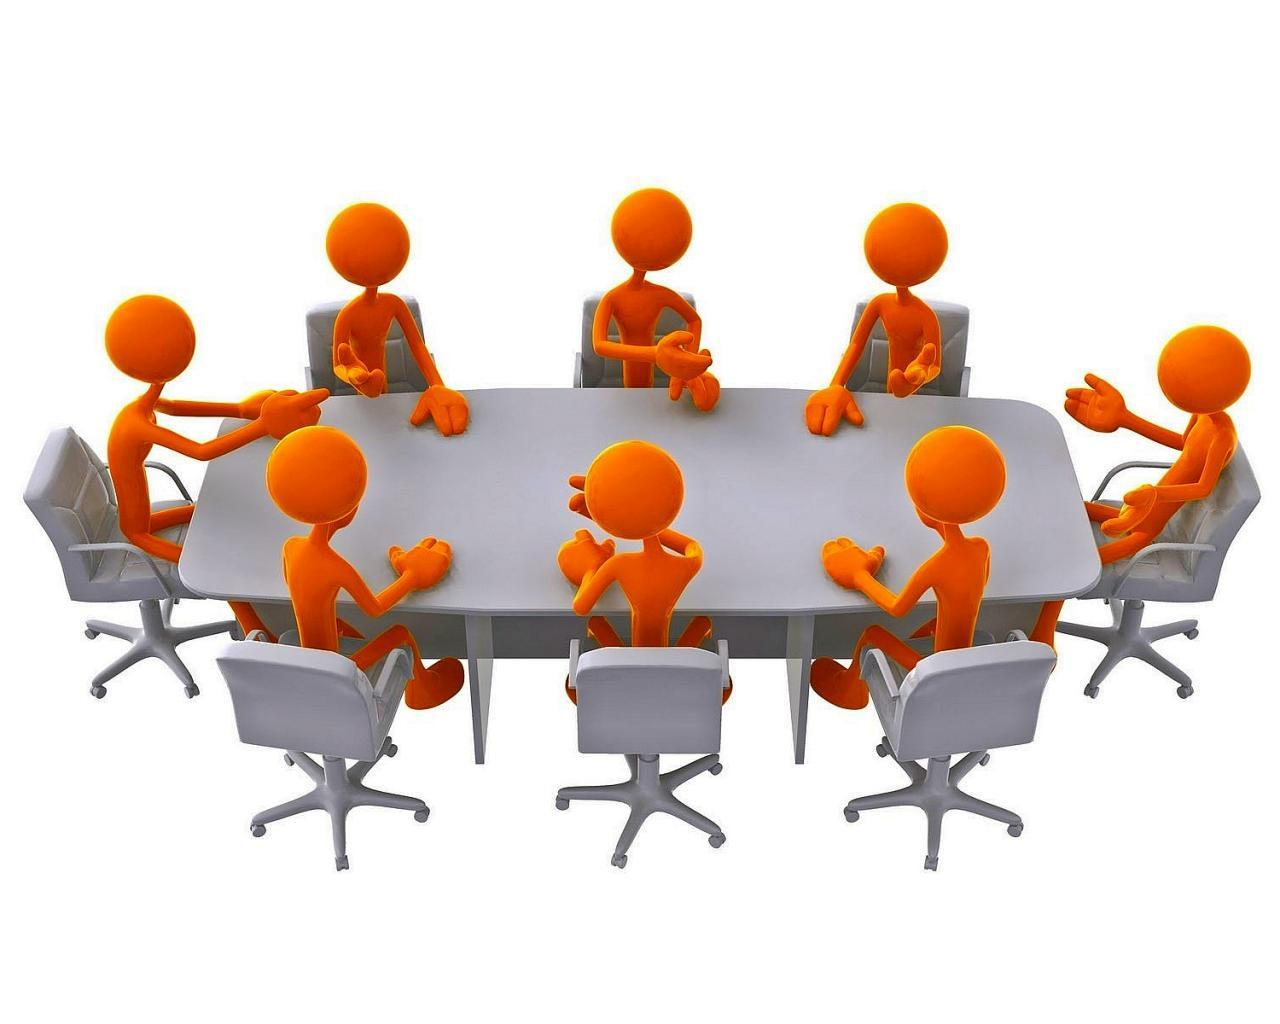 Conference meeting clipart 6 » Clipart Portal.